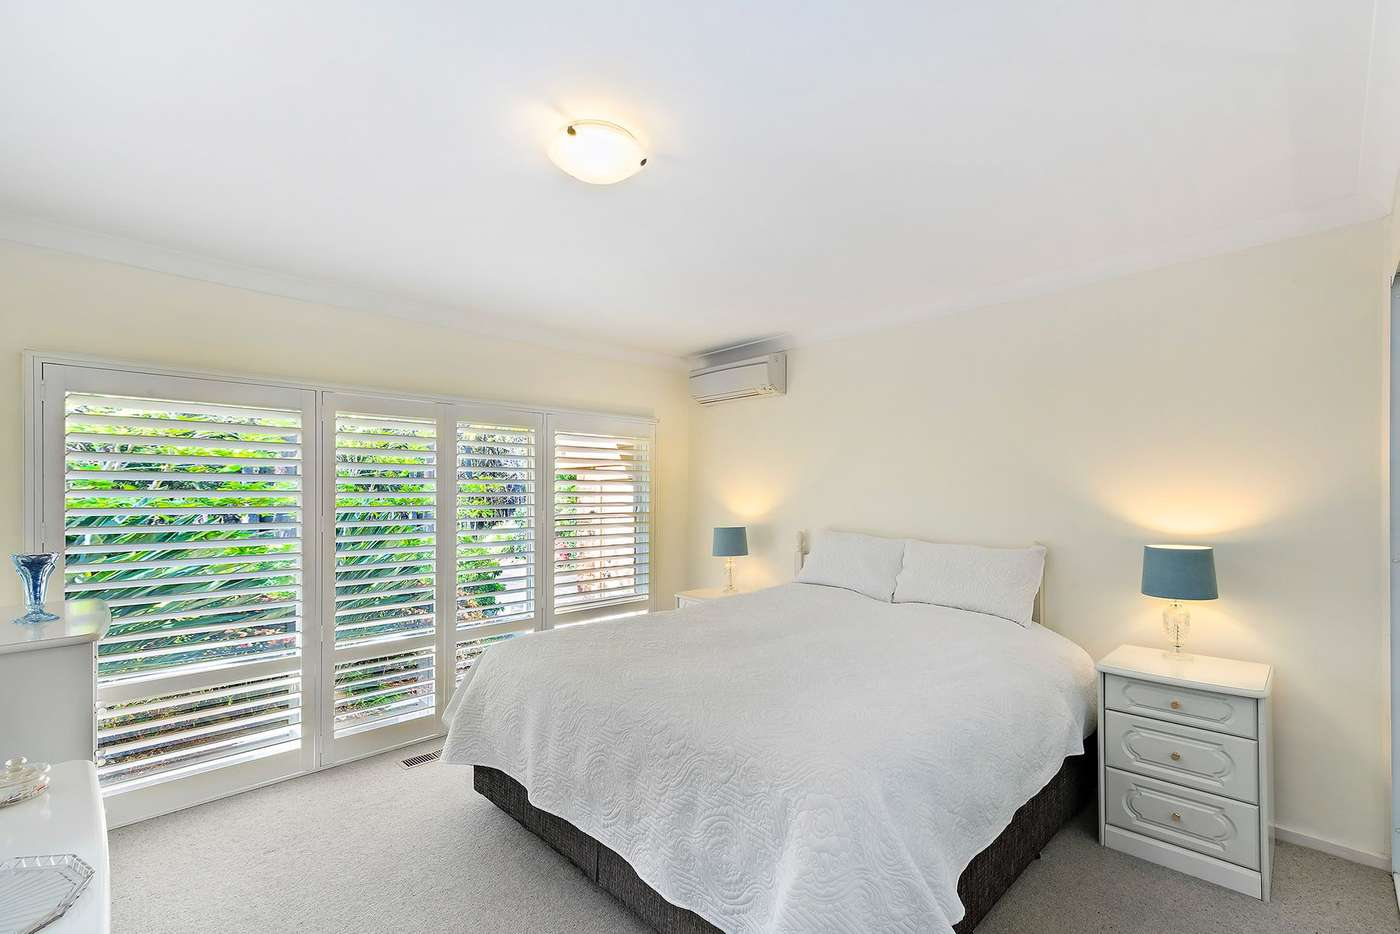 Sixth view of Homely house listing, 34 Timbarra Road, St Ives NSW 2075